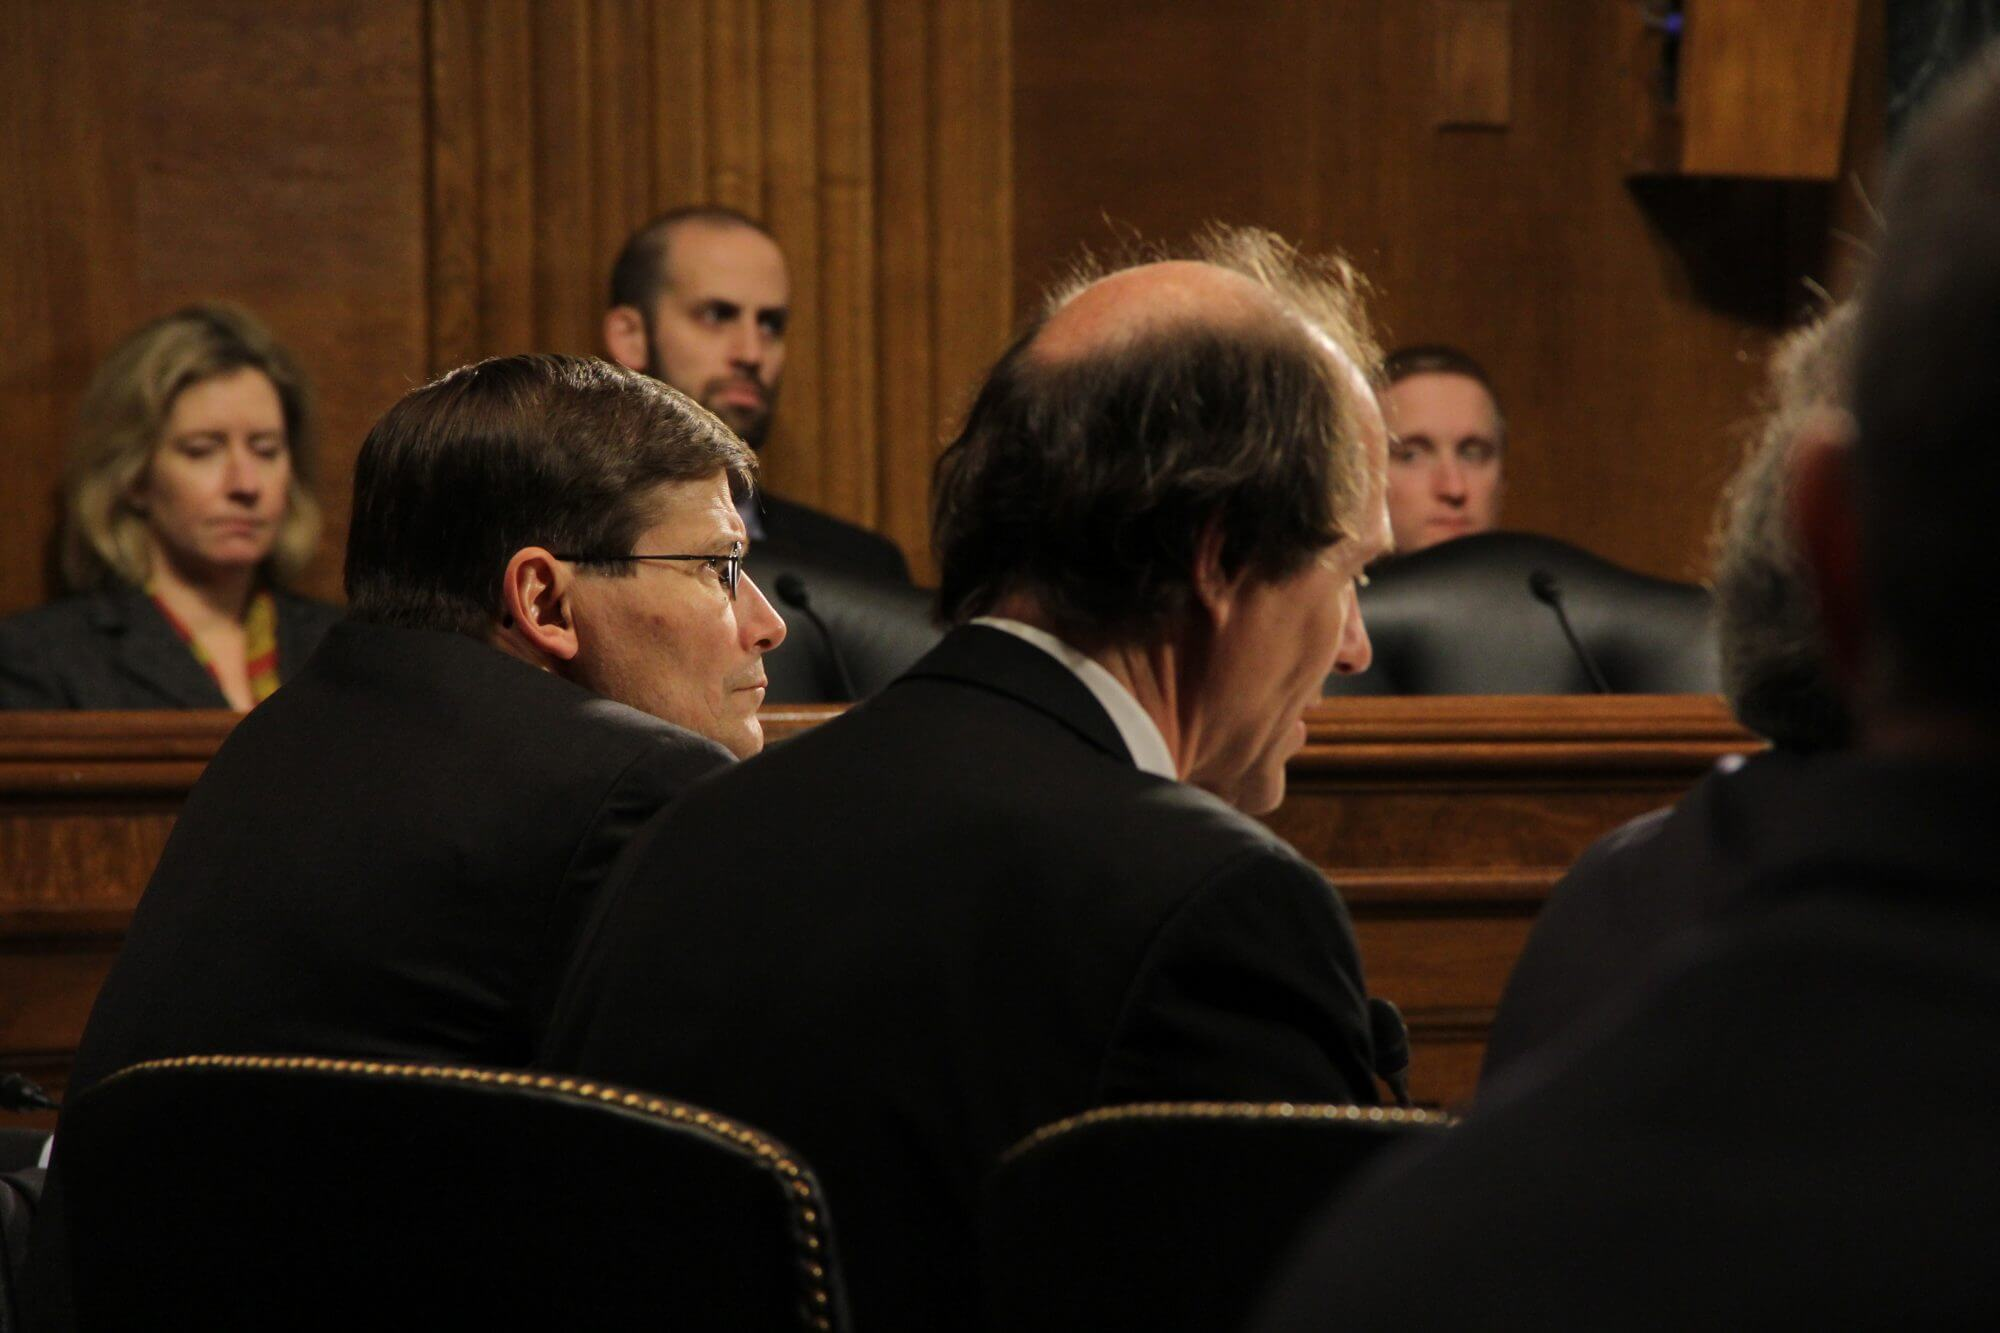 NSA review group testified on plans for change